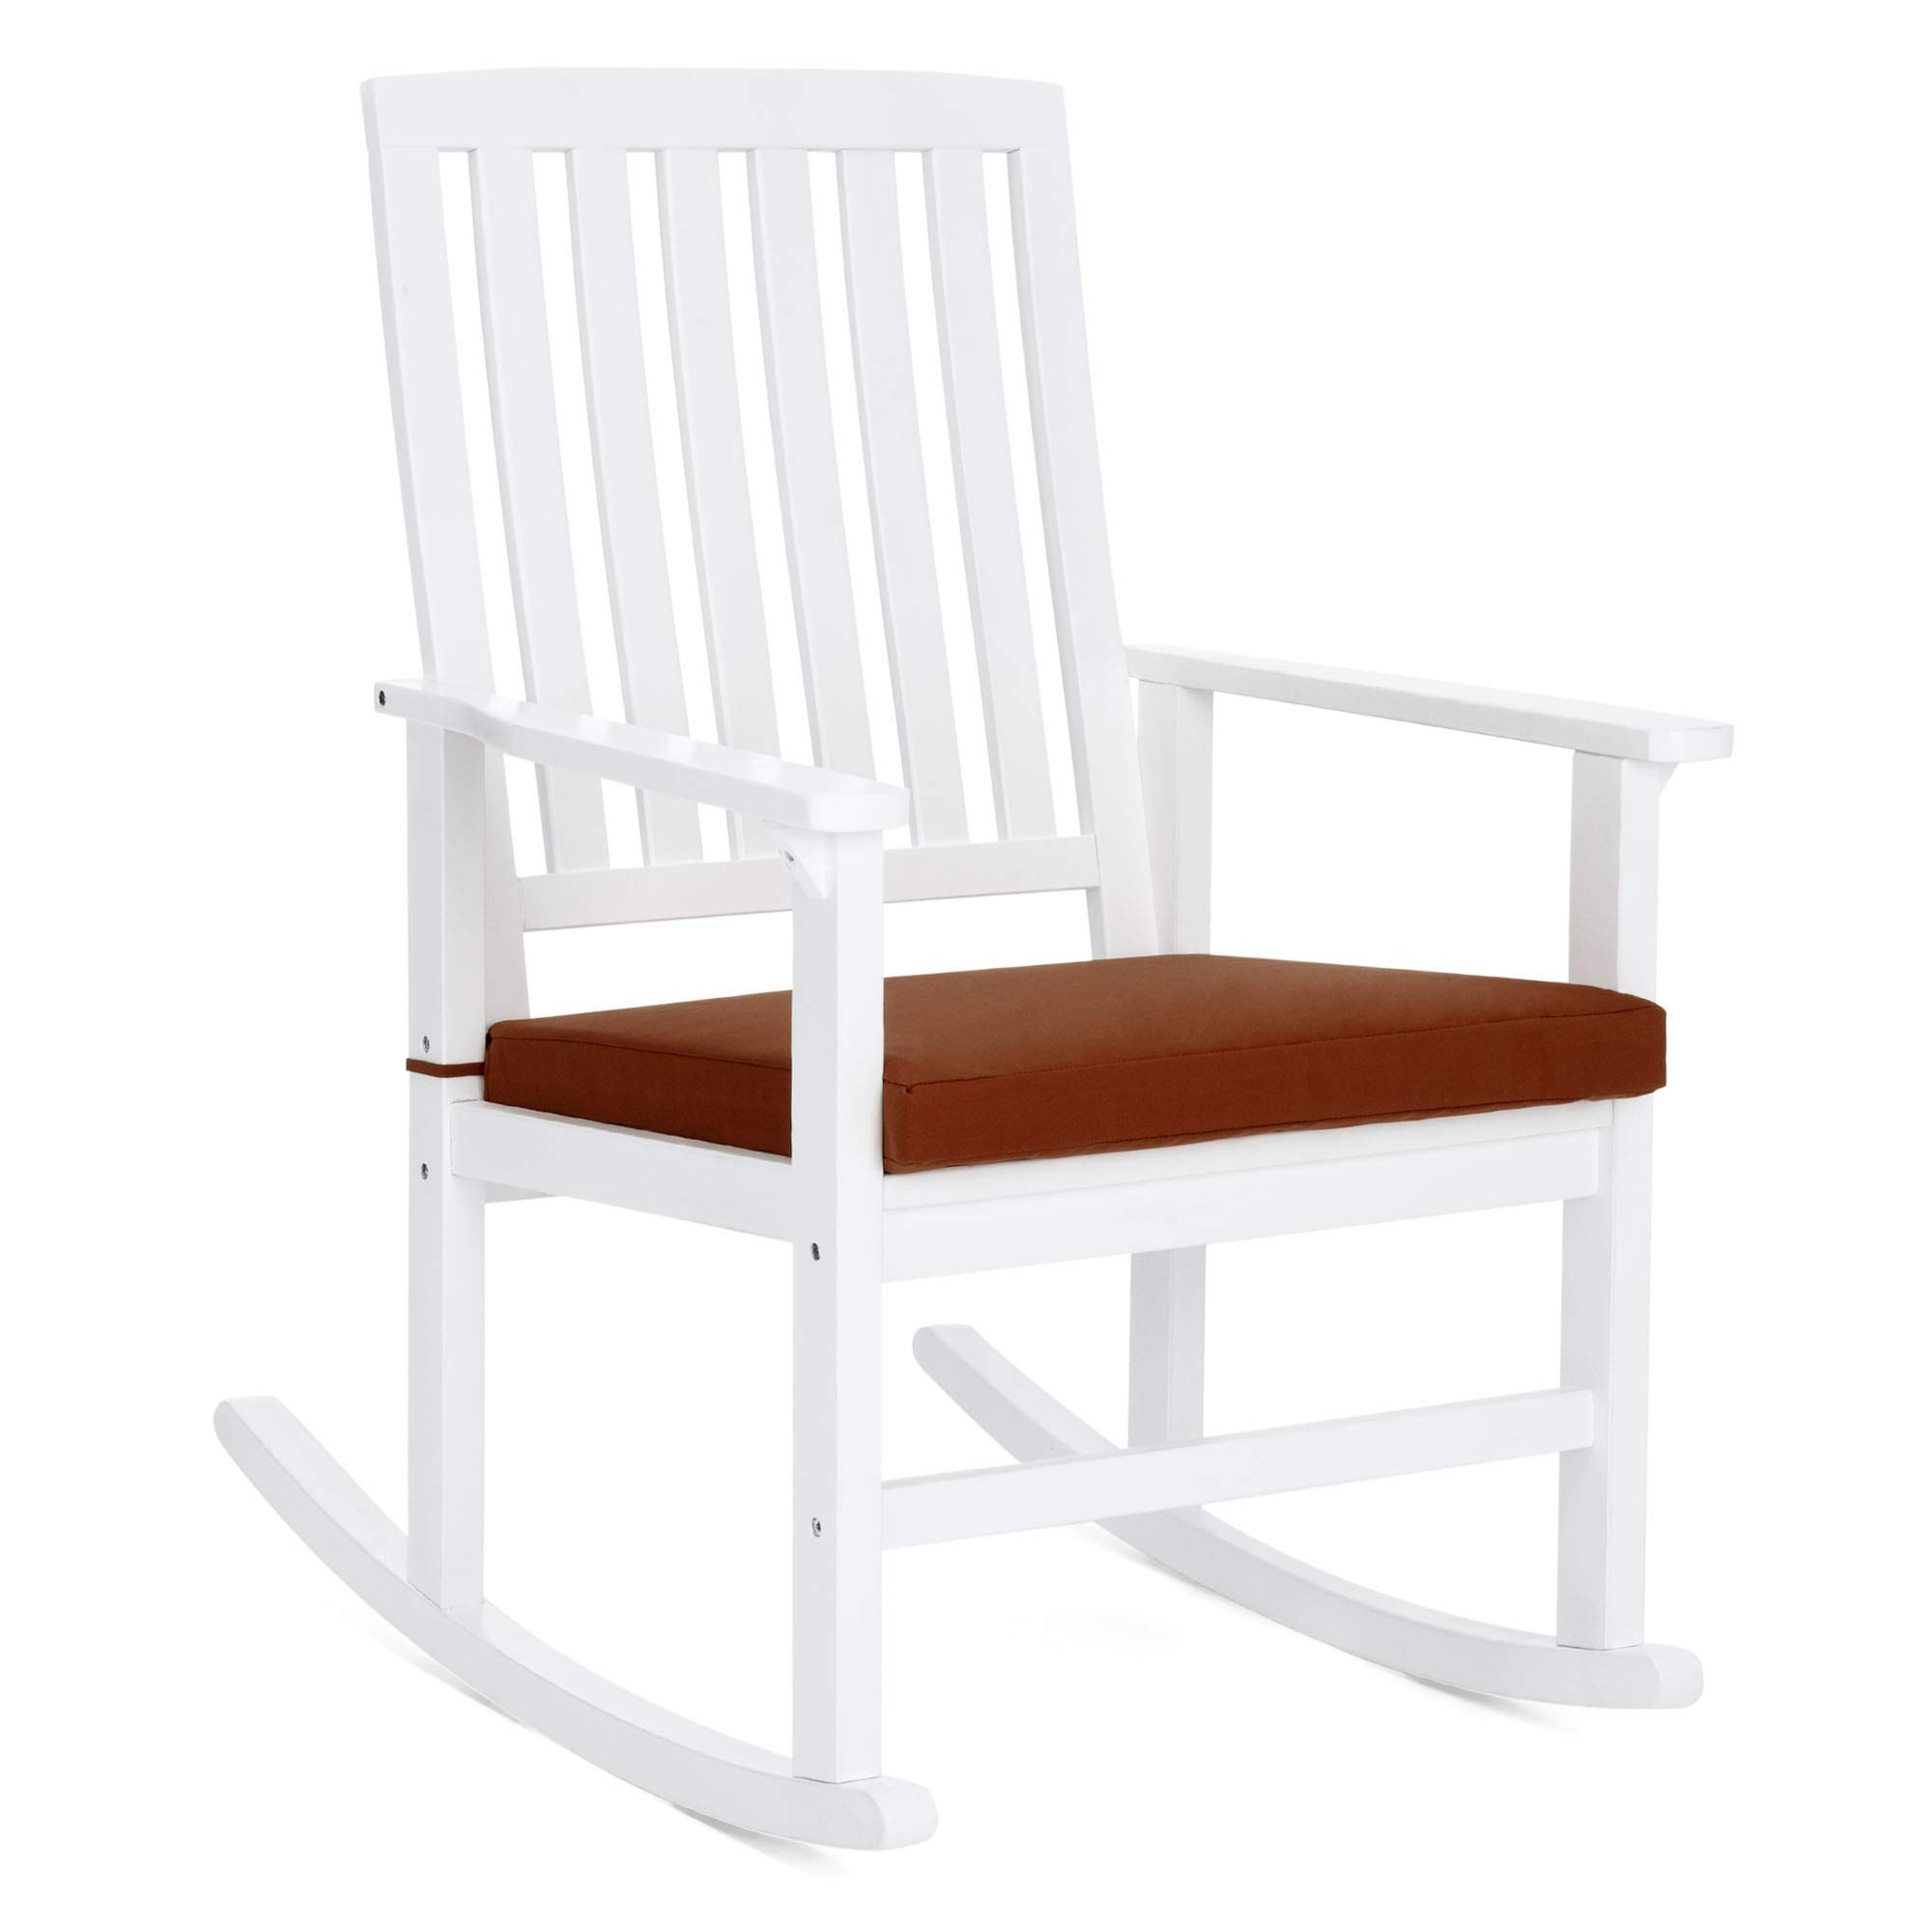 Best Choice Products Indoor Outdoor Wooden Patio Rocking Chair Porch Glider with Seat Cushion, White/Red